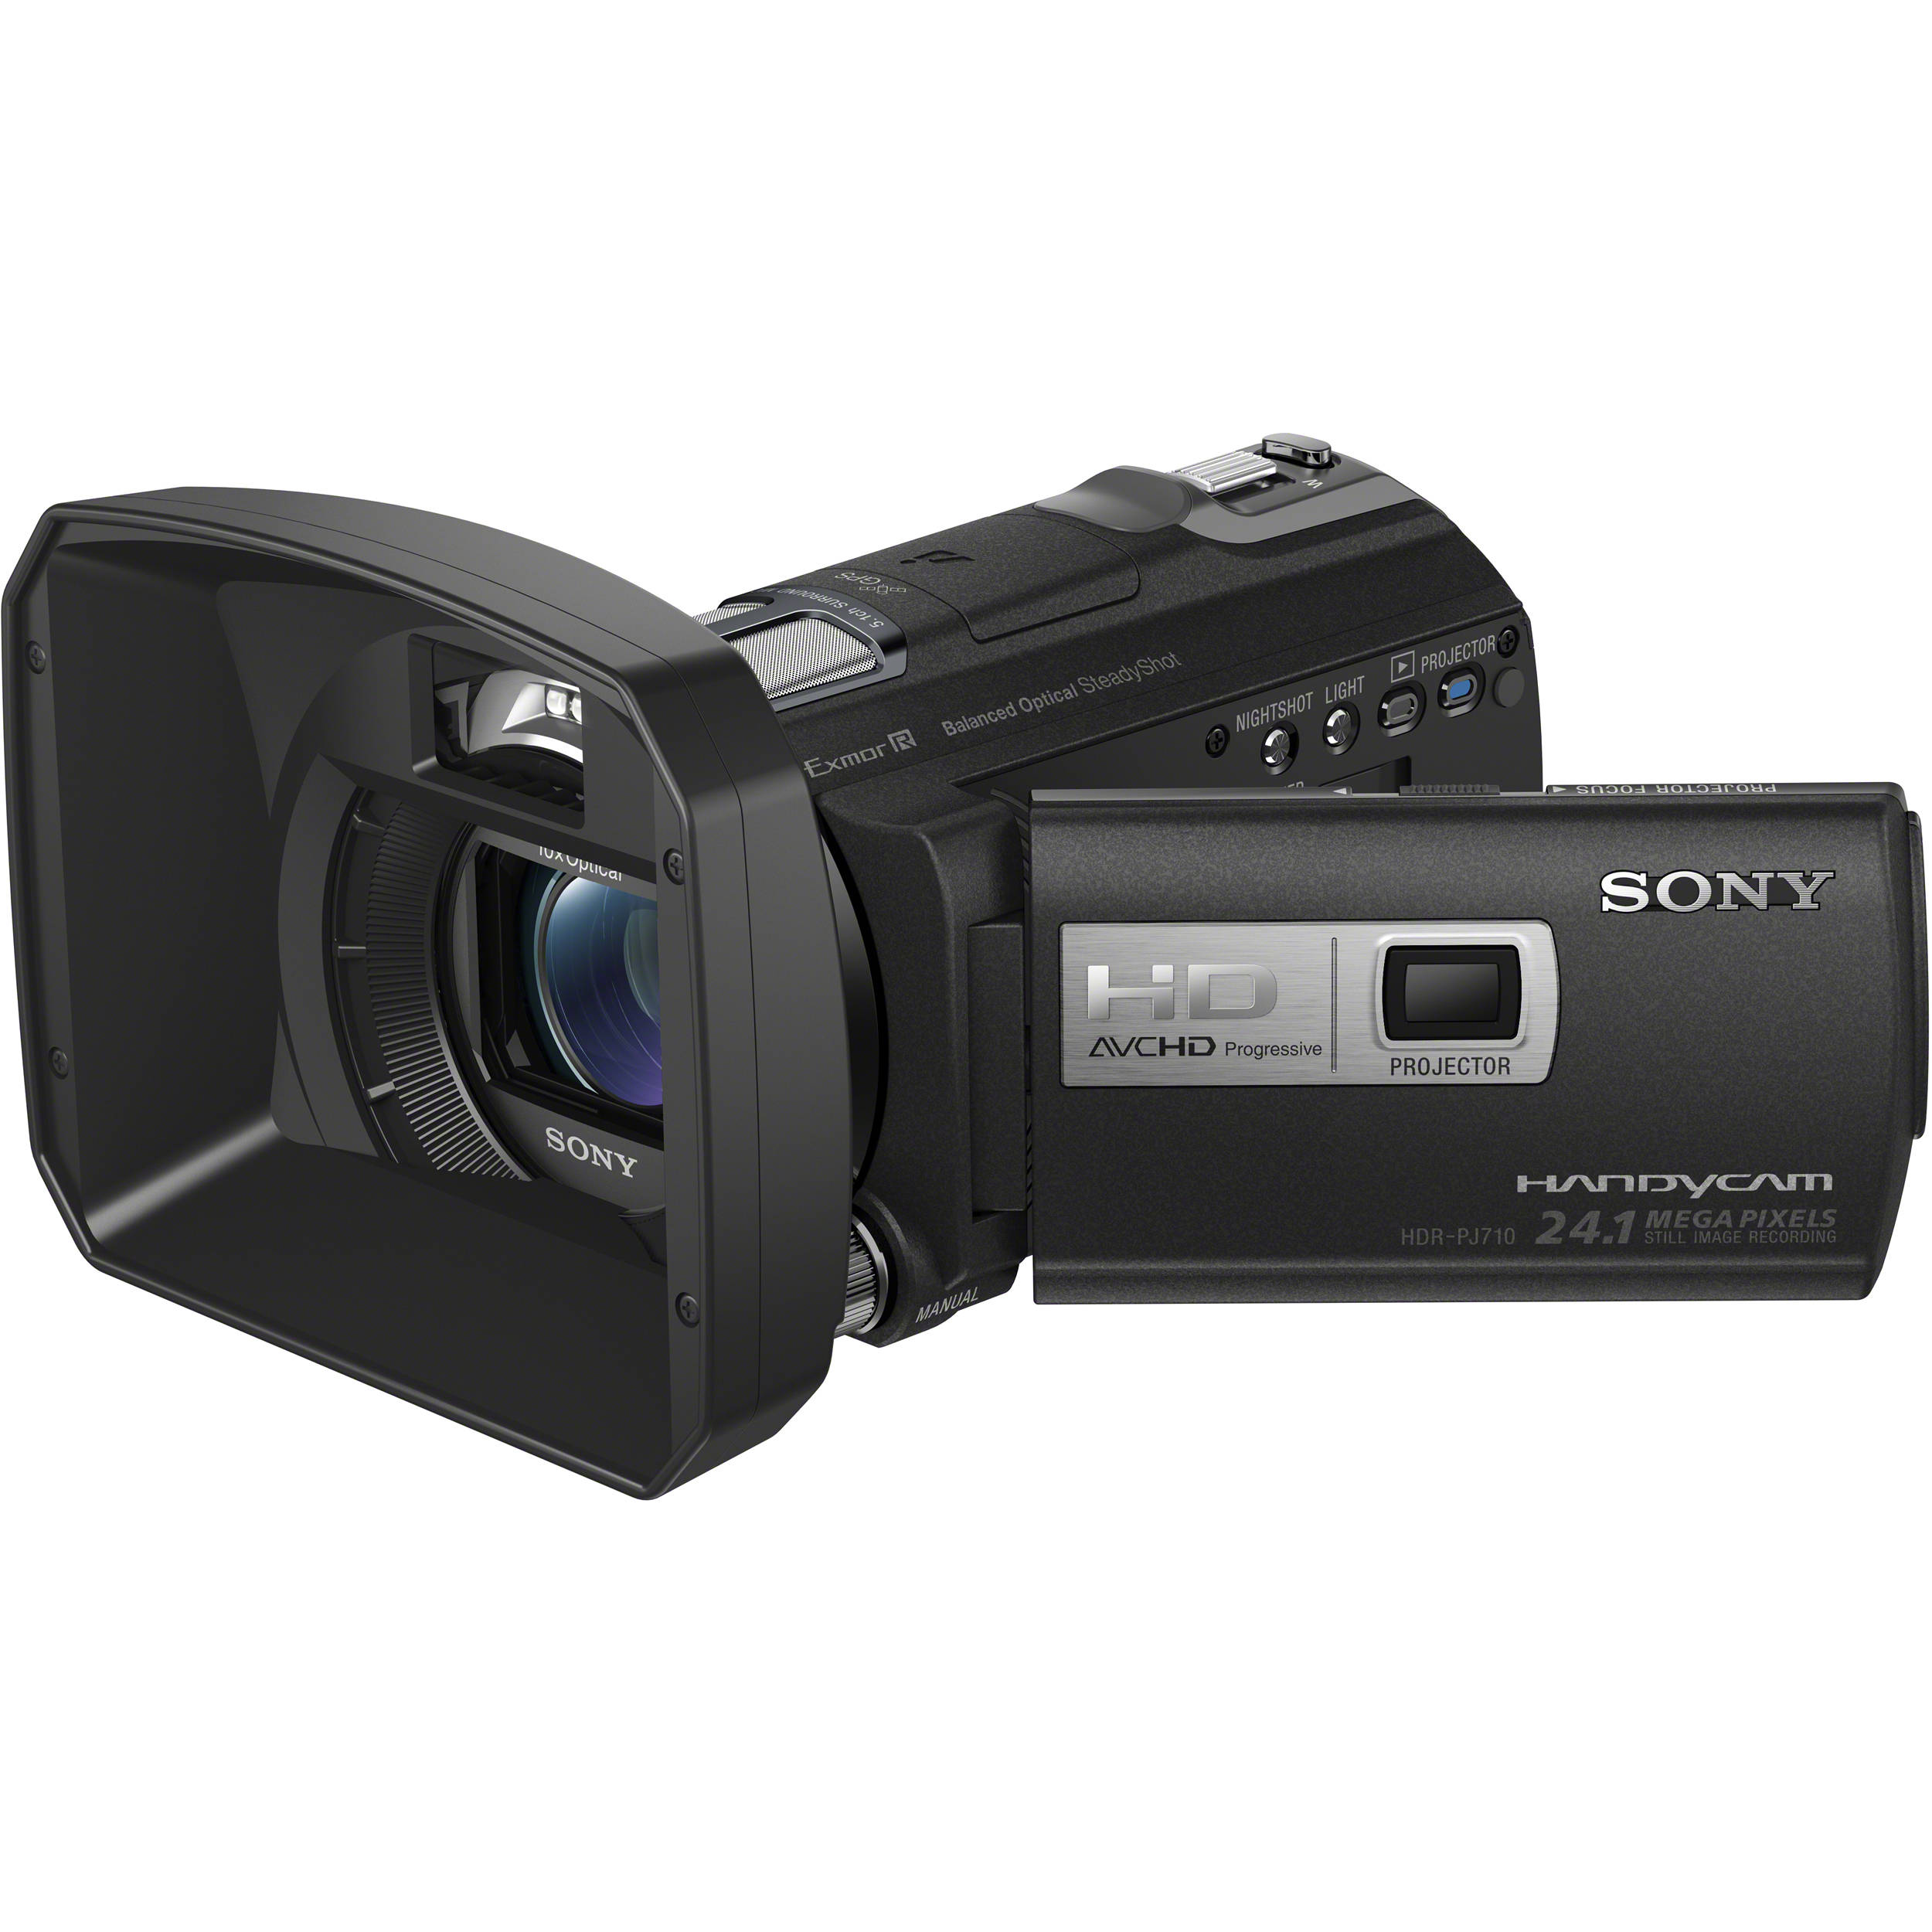 Approx Height 13 inches Sony HDR-PJ710V Camcorder Tripod Flexible Tripod for Digital Cameras and Camcorders